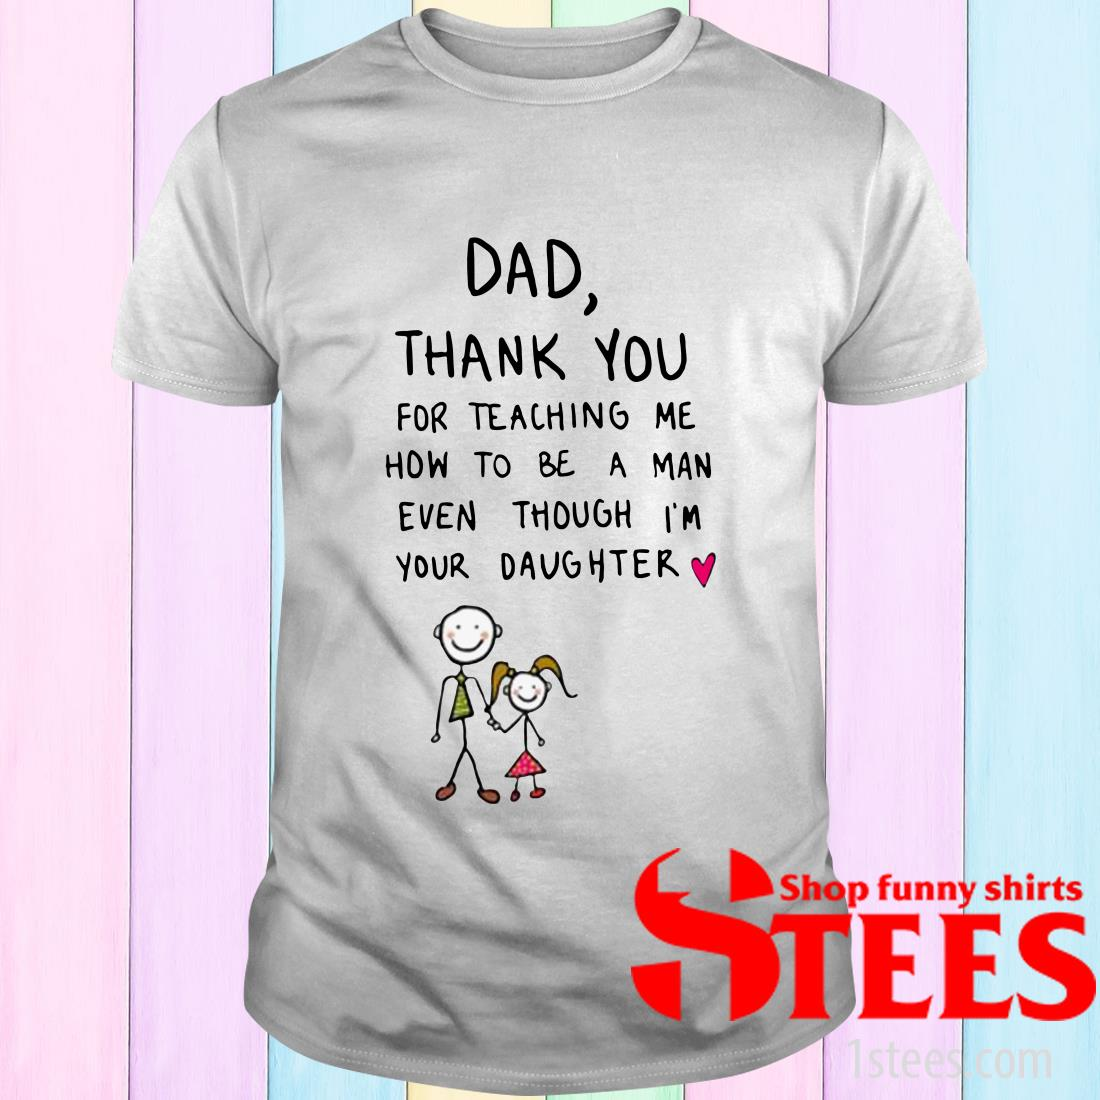 Dad, Thank You For Teaching Me How To Be A Man Even Though I'm Your Daughter Coffee T-Shirt